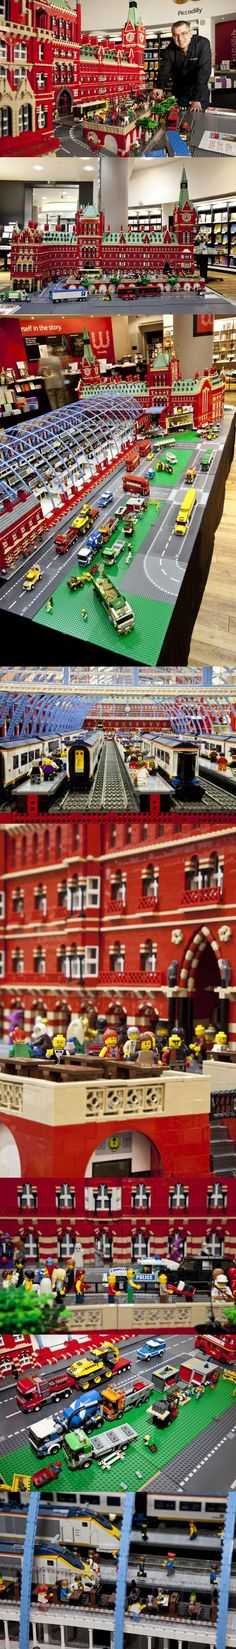 Incredible LEGO St Pancras International Station LEGO station